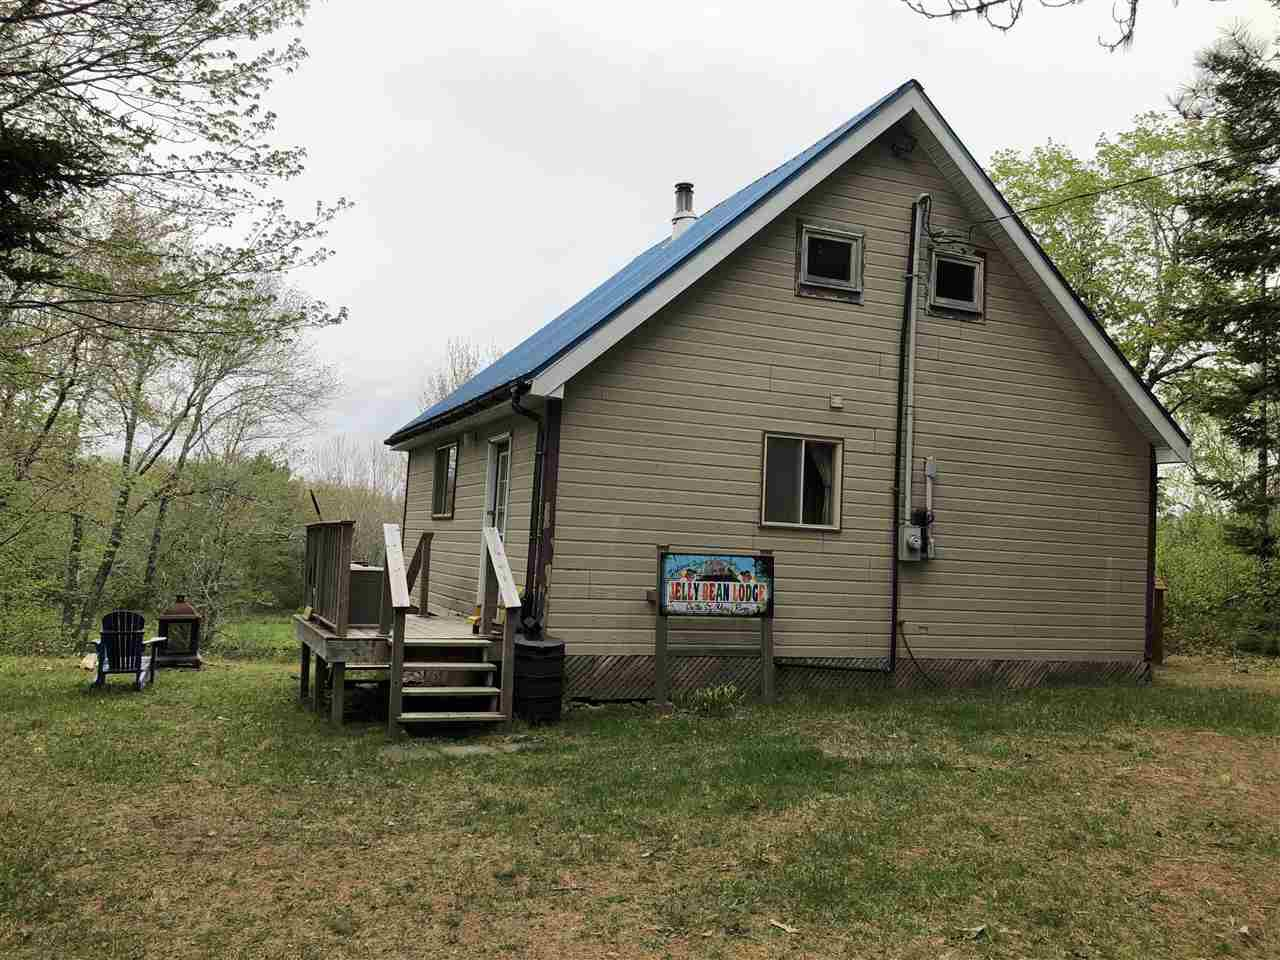 Main Photo: 1385 Highway 348 in Caledonia: 303-Guysborough County Residential for sale (Highland Region)  : MLS®# 202009049